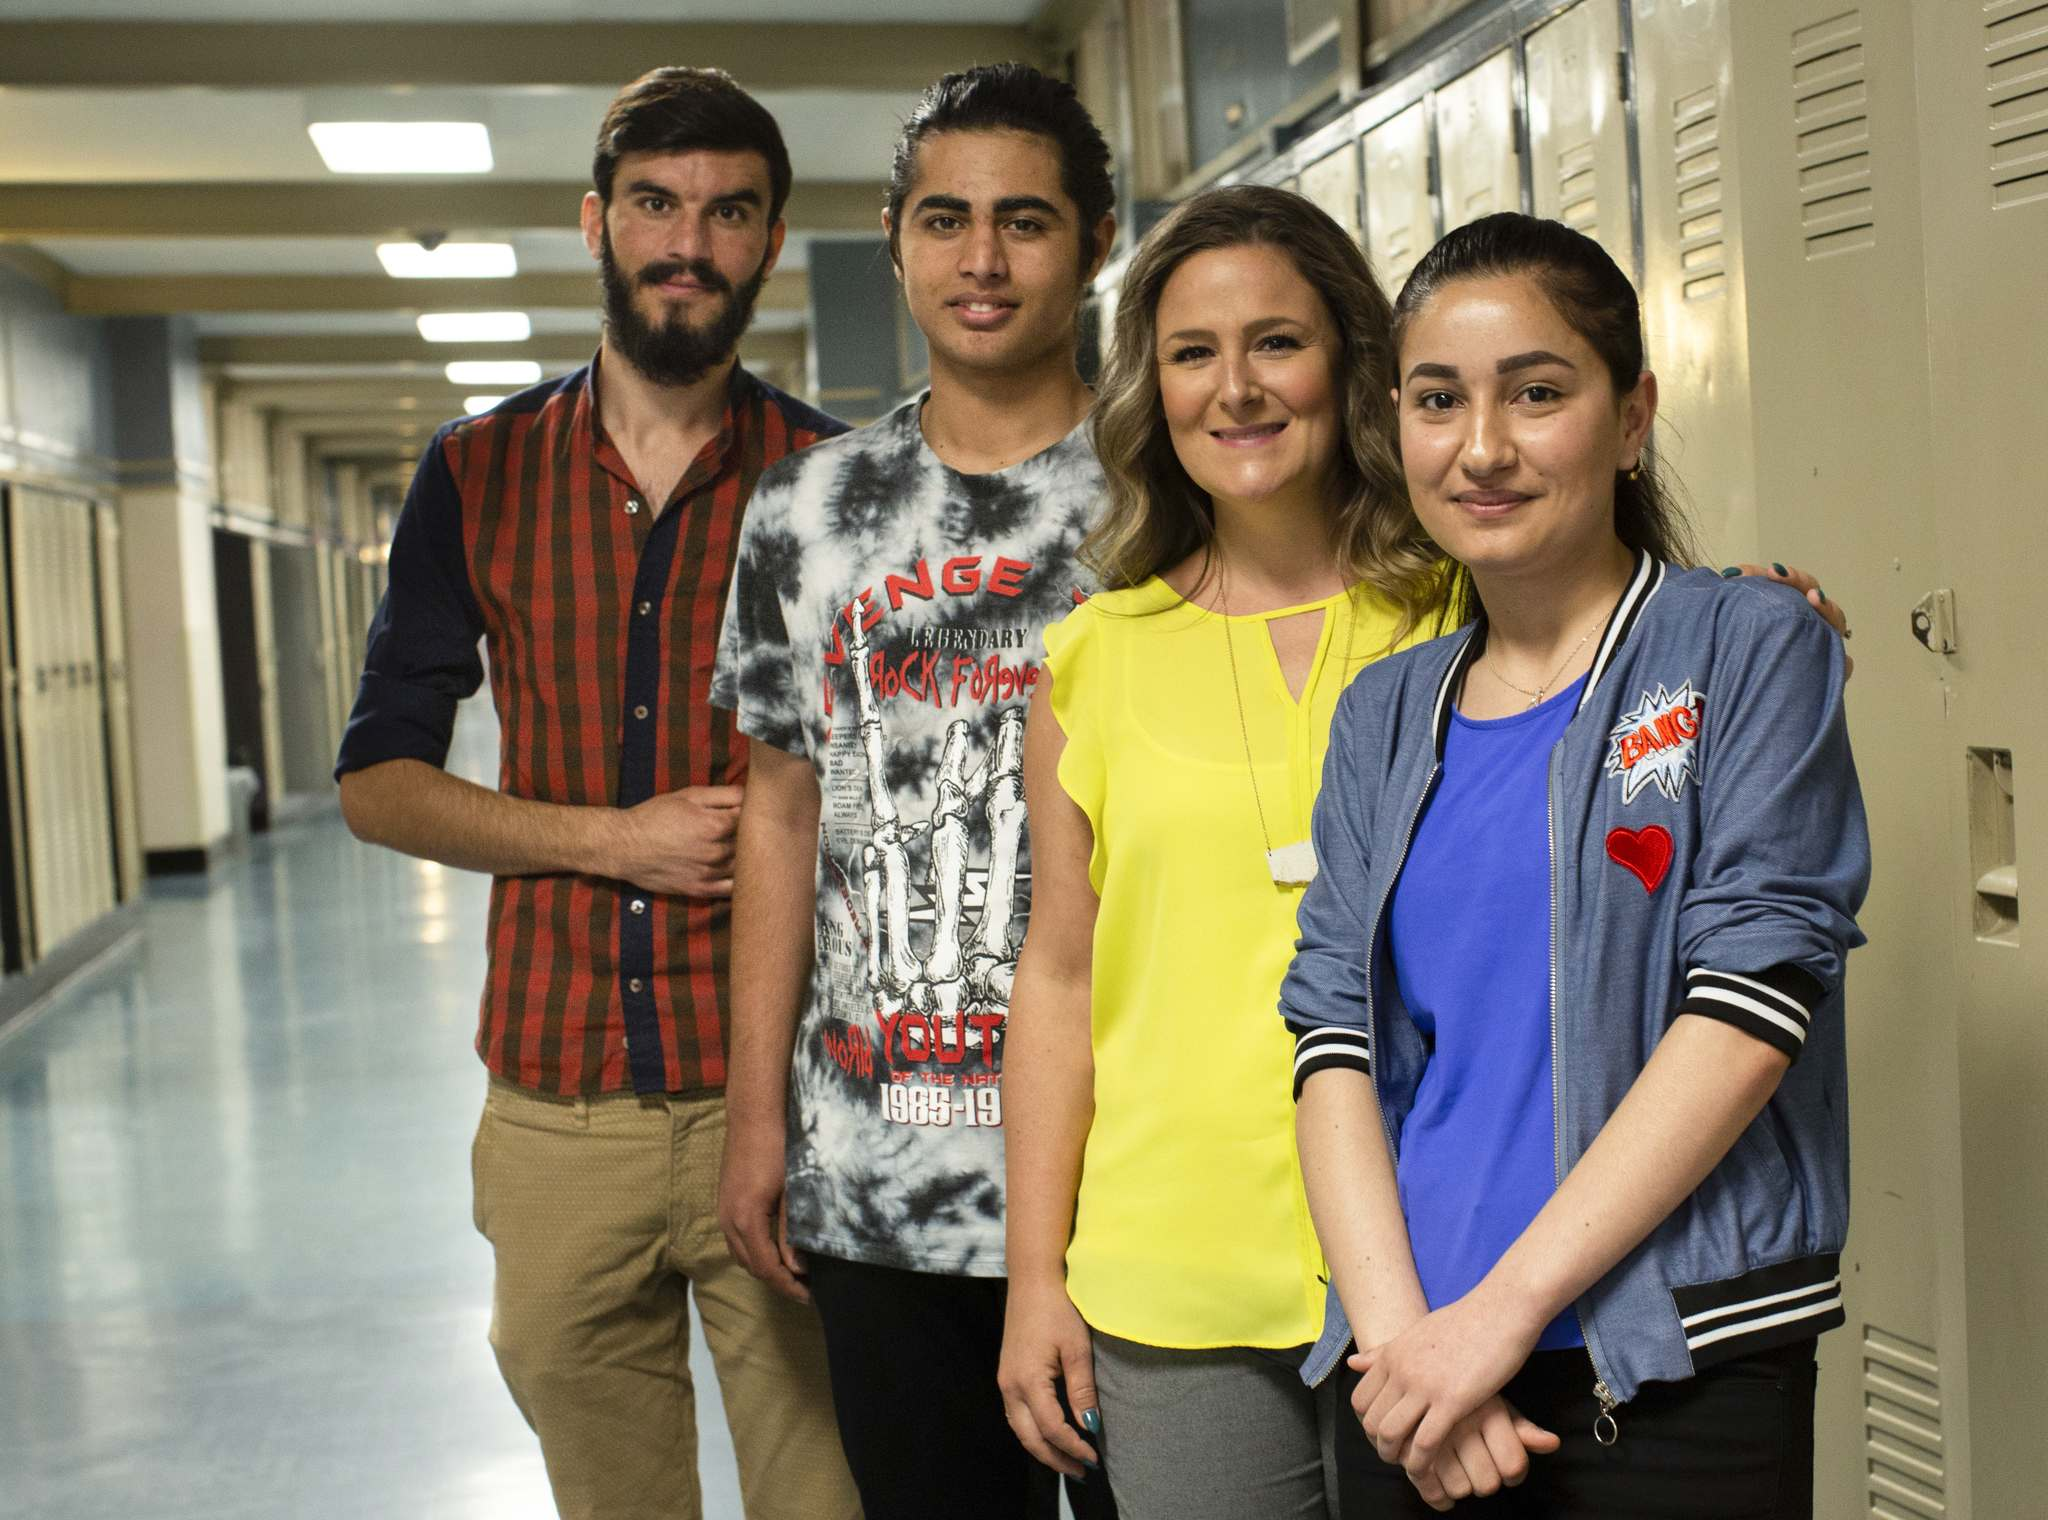 Megan Sodomsky (third from left) is a volunteer English as an Additional Language (EAL) instructor who has helped Yazidi refugees adapt to Canadian life. Students Diyar Salih (from left), Amin Murad and Aida Naso at Grant Park High School. (Andrew Ryan / Winnipeg Free Press)